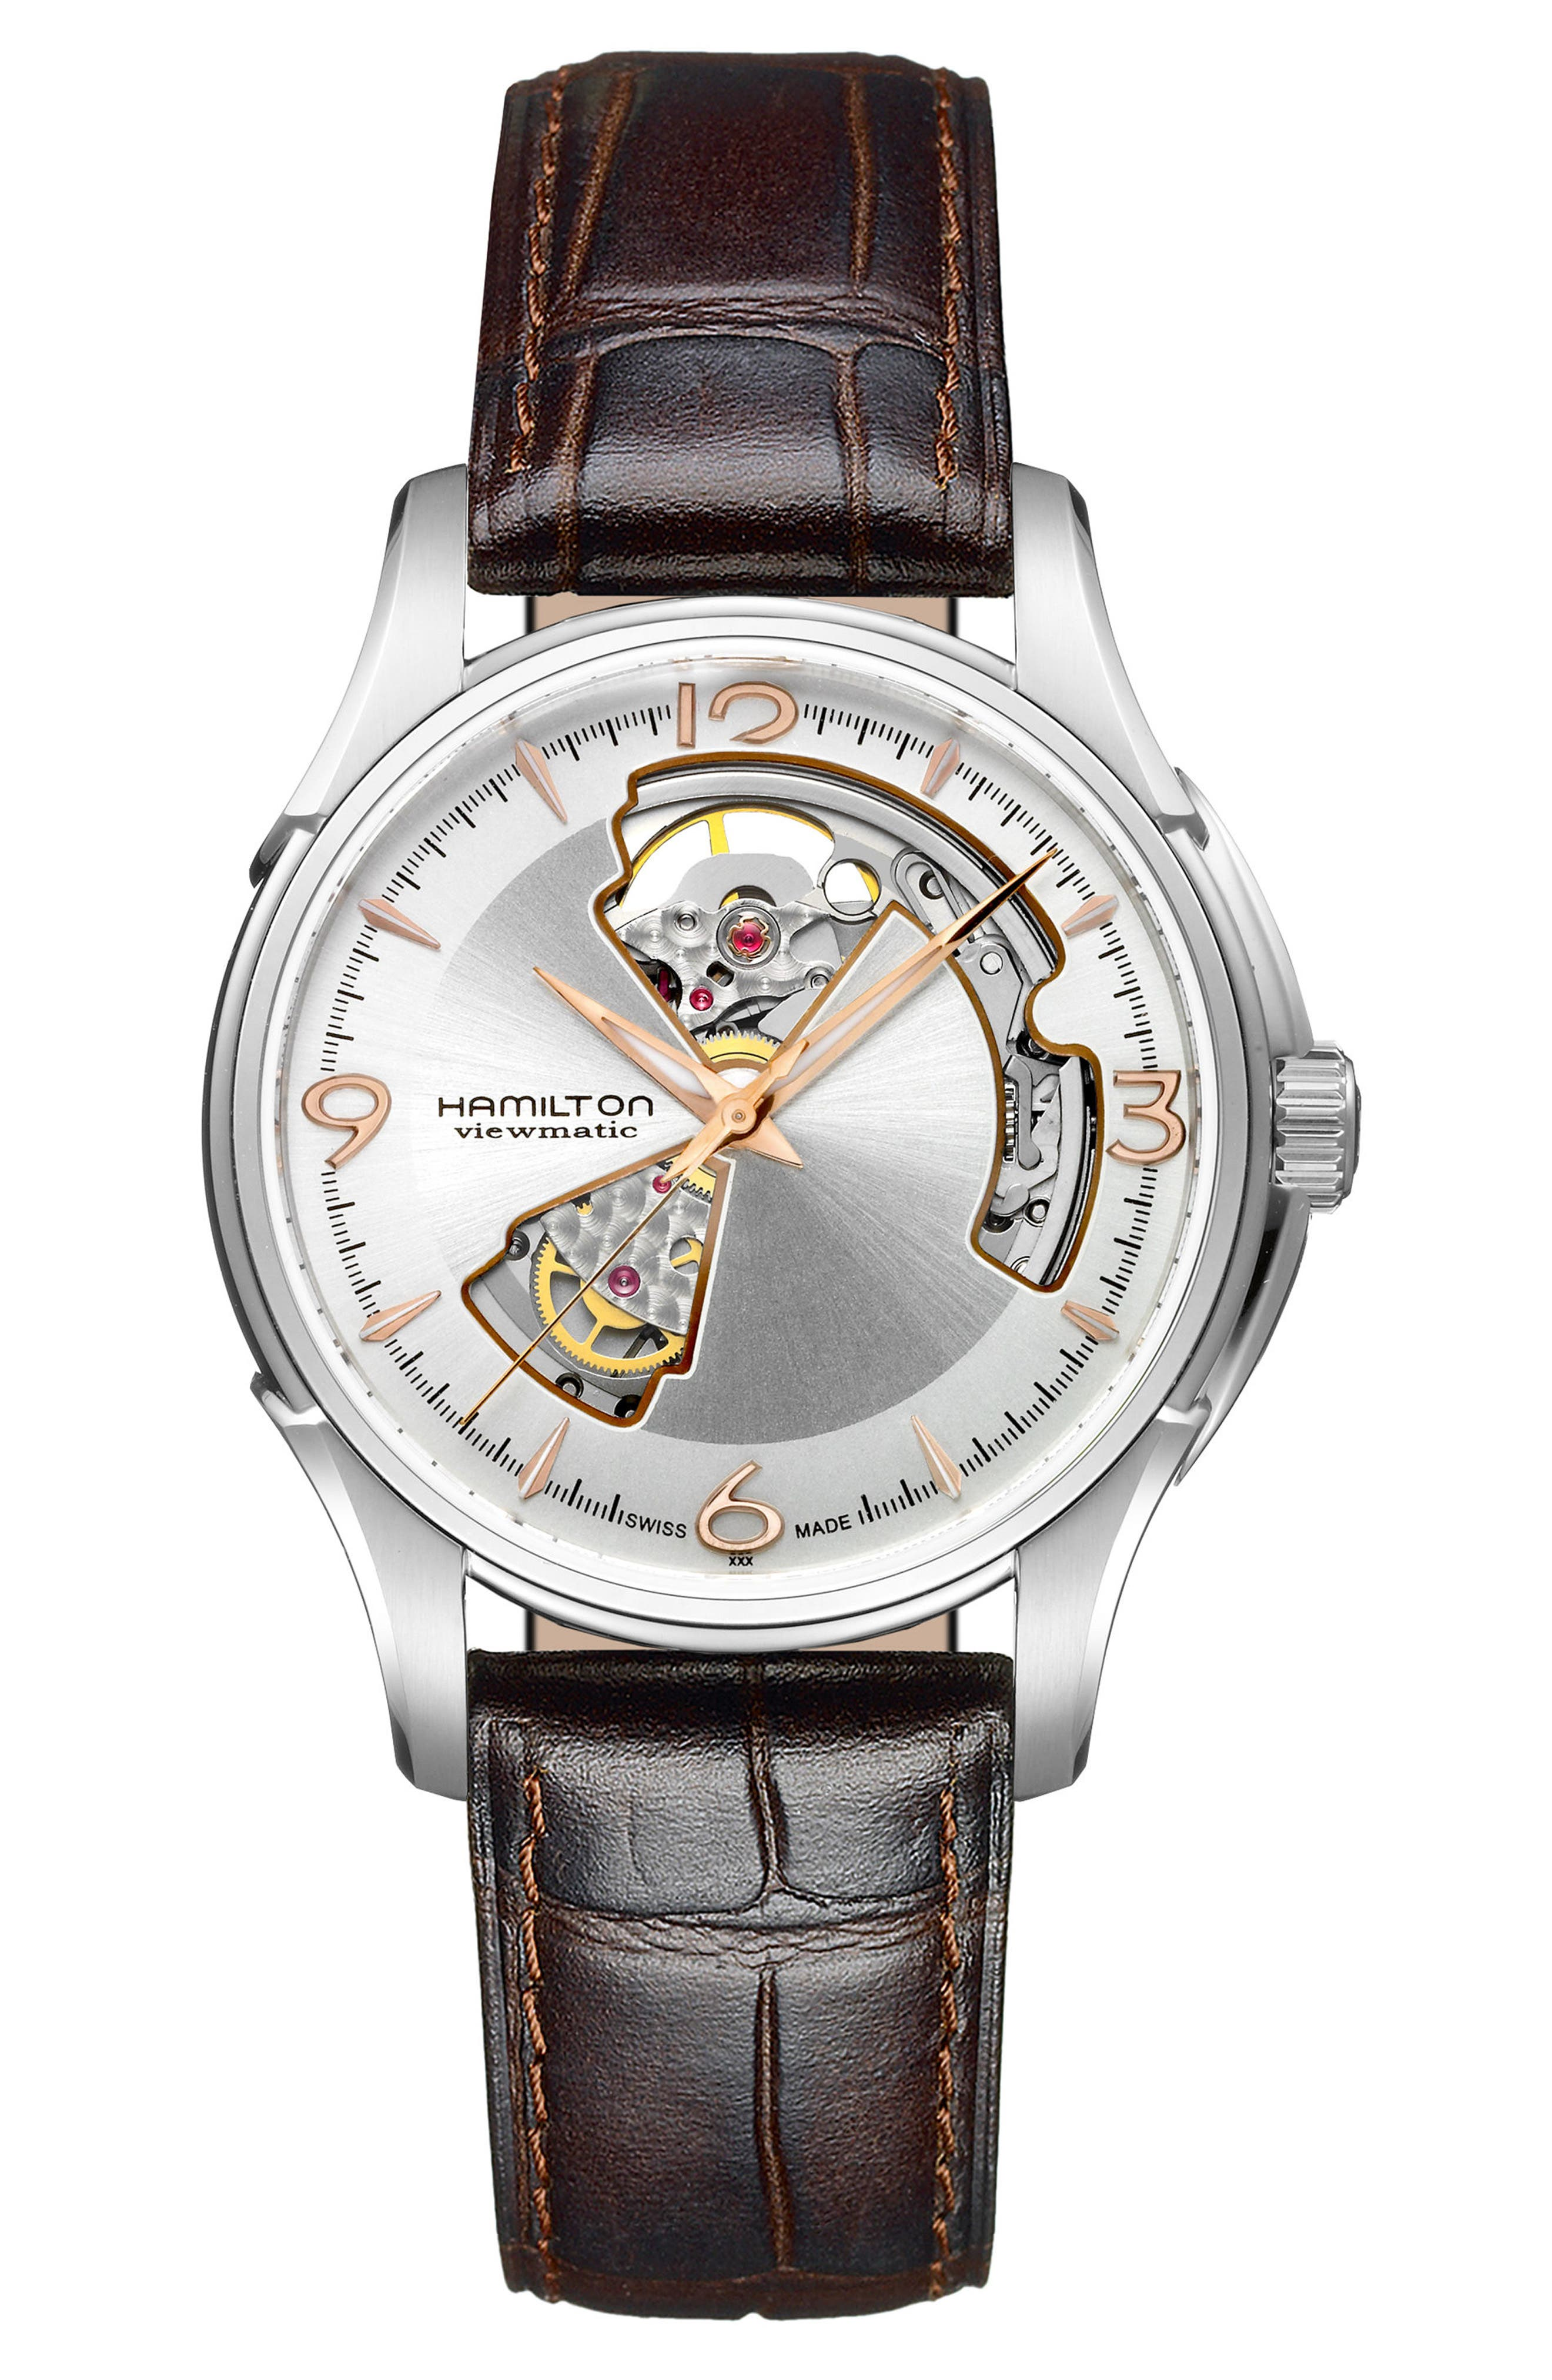 HAMILTON Jazzmaster Open Heart Automatic Leather Strap Watch, 40mm